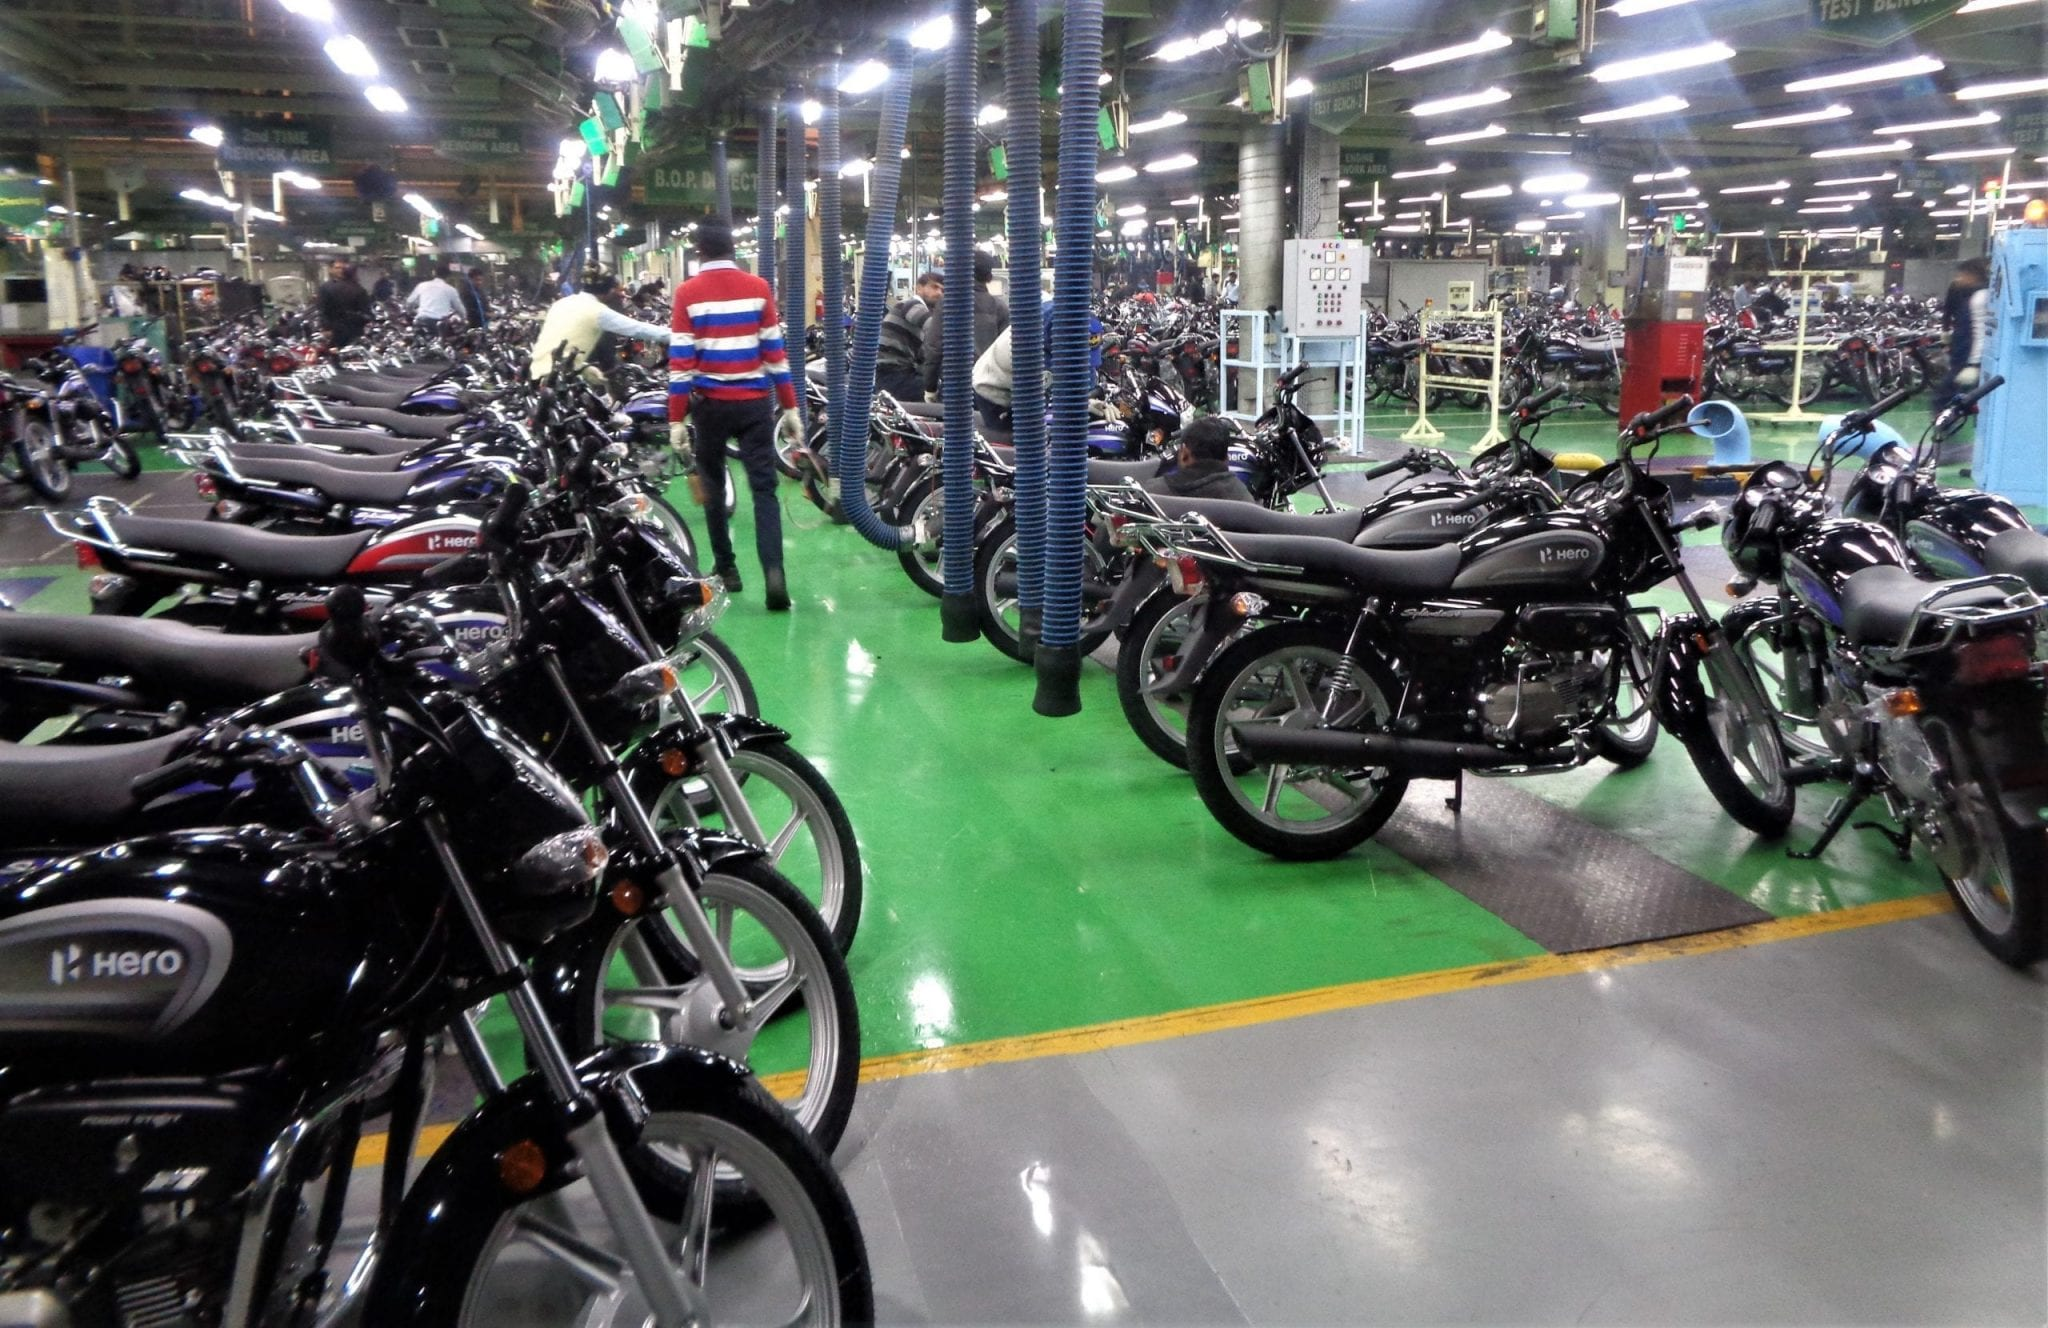 Hero MotoCorp warehouse with dozens of motorcycles lined up on display.